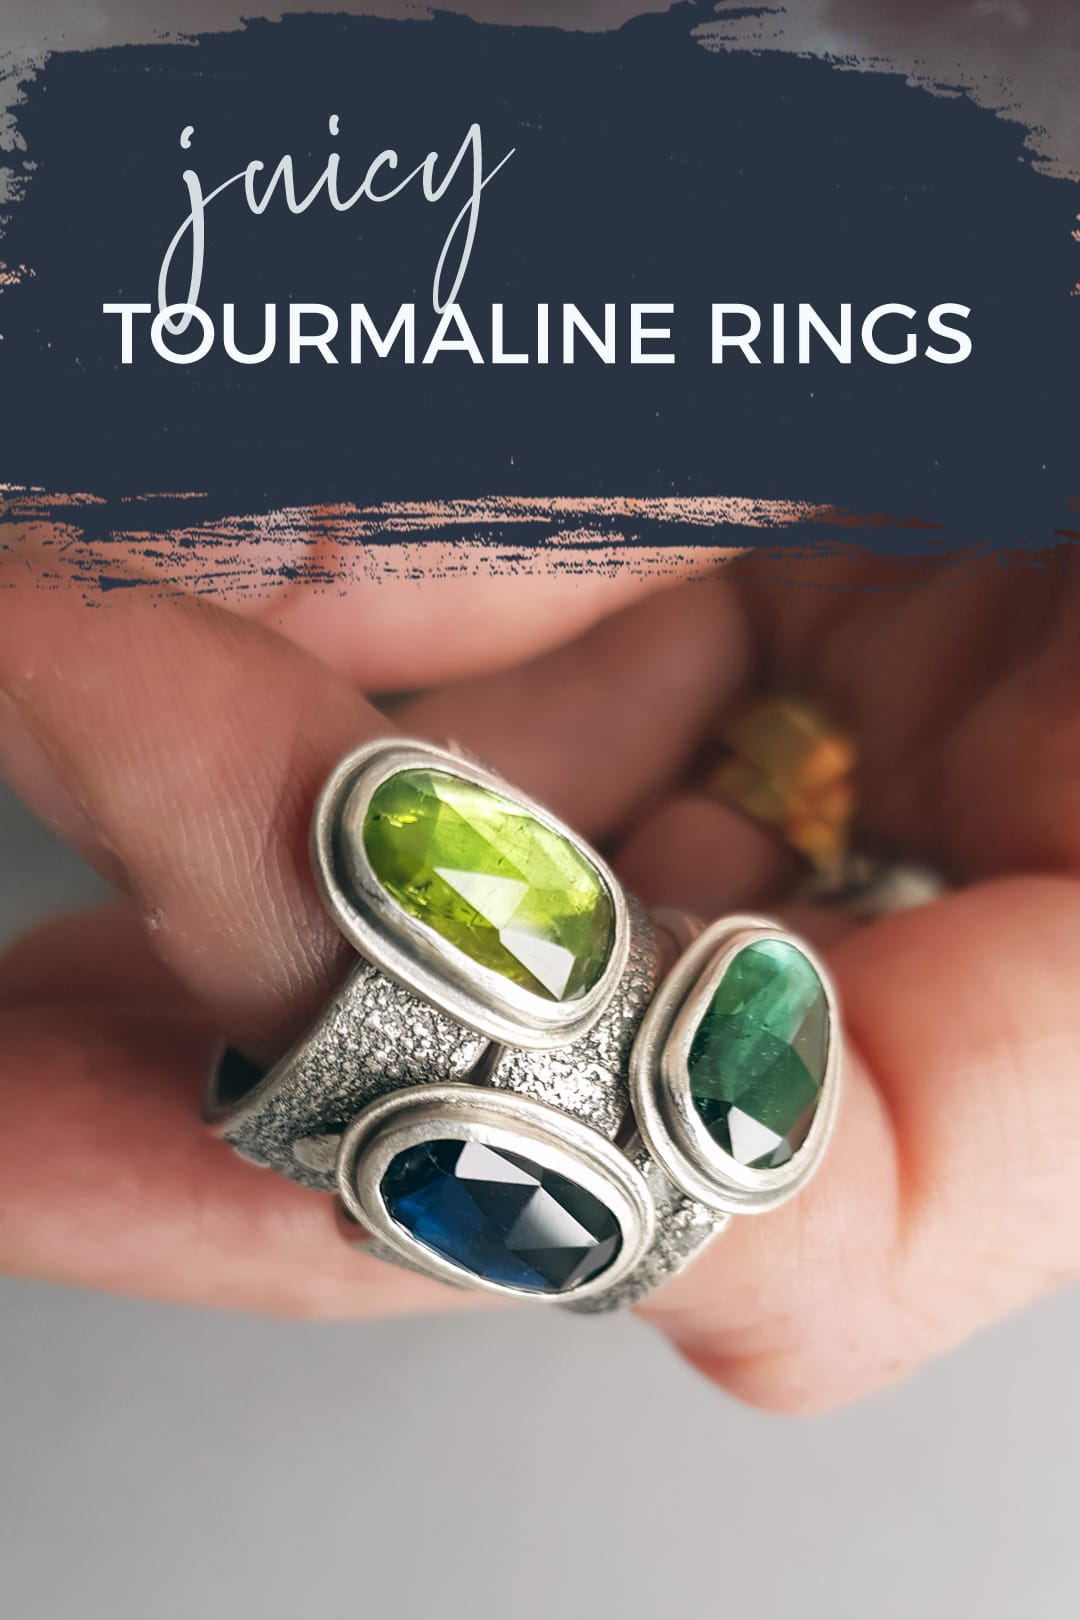 Green and blue tourmaline rings in textured silver